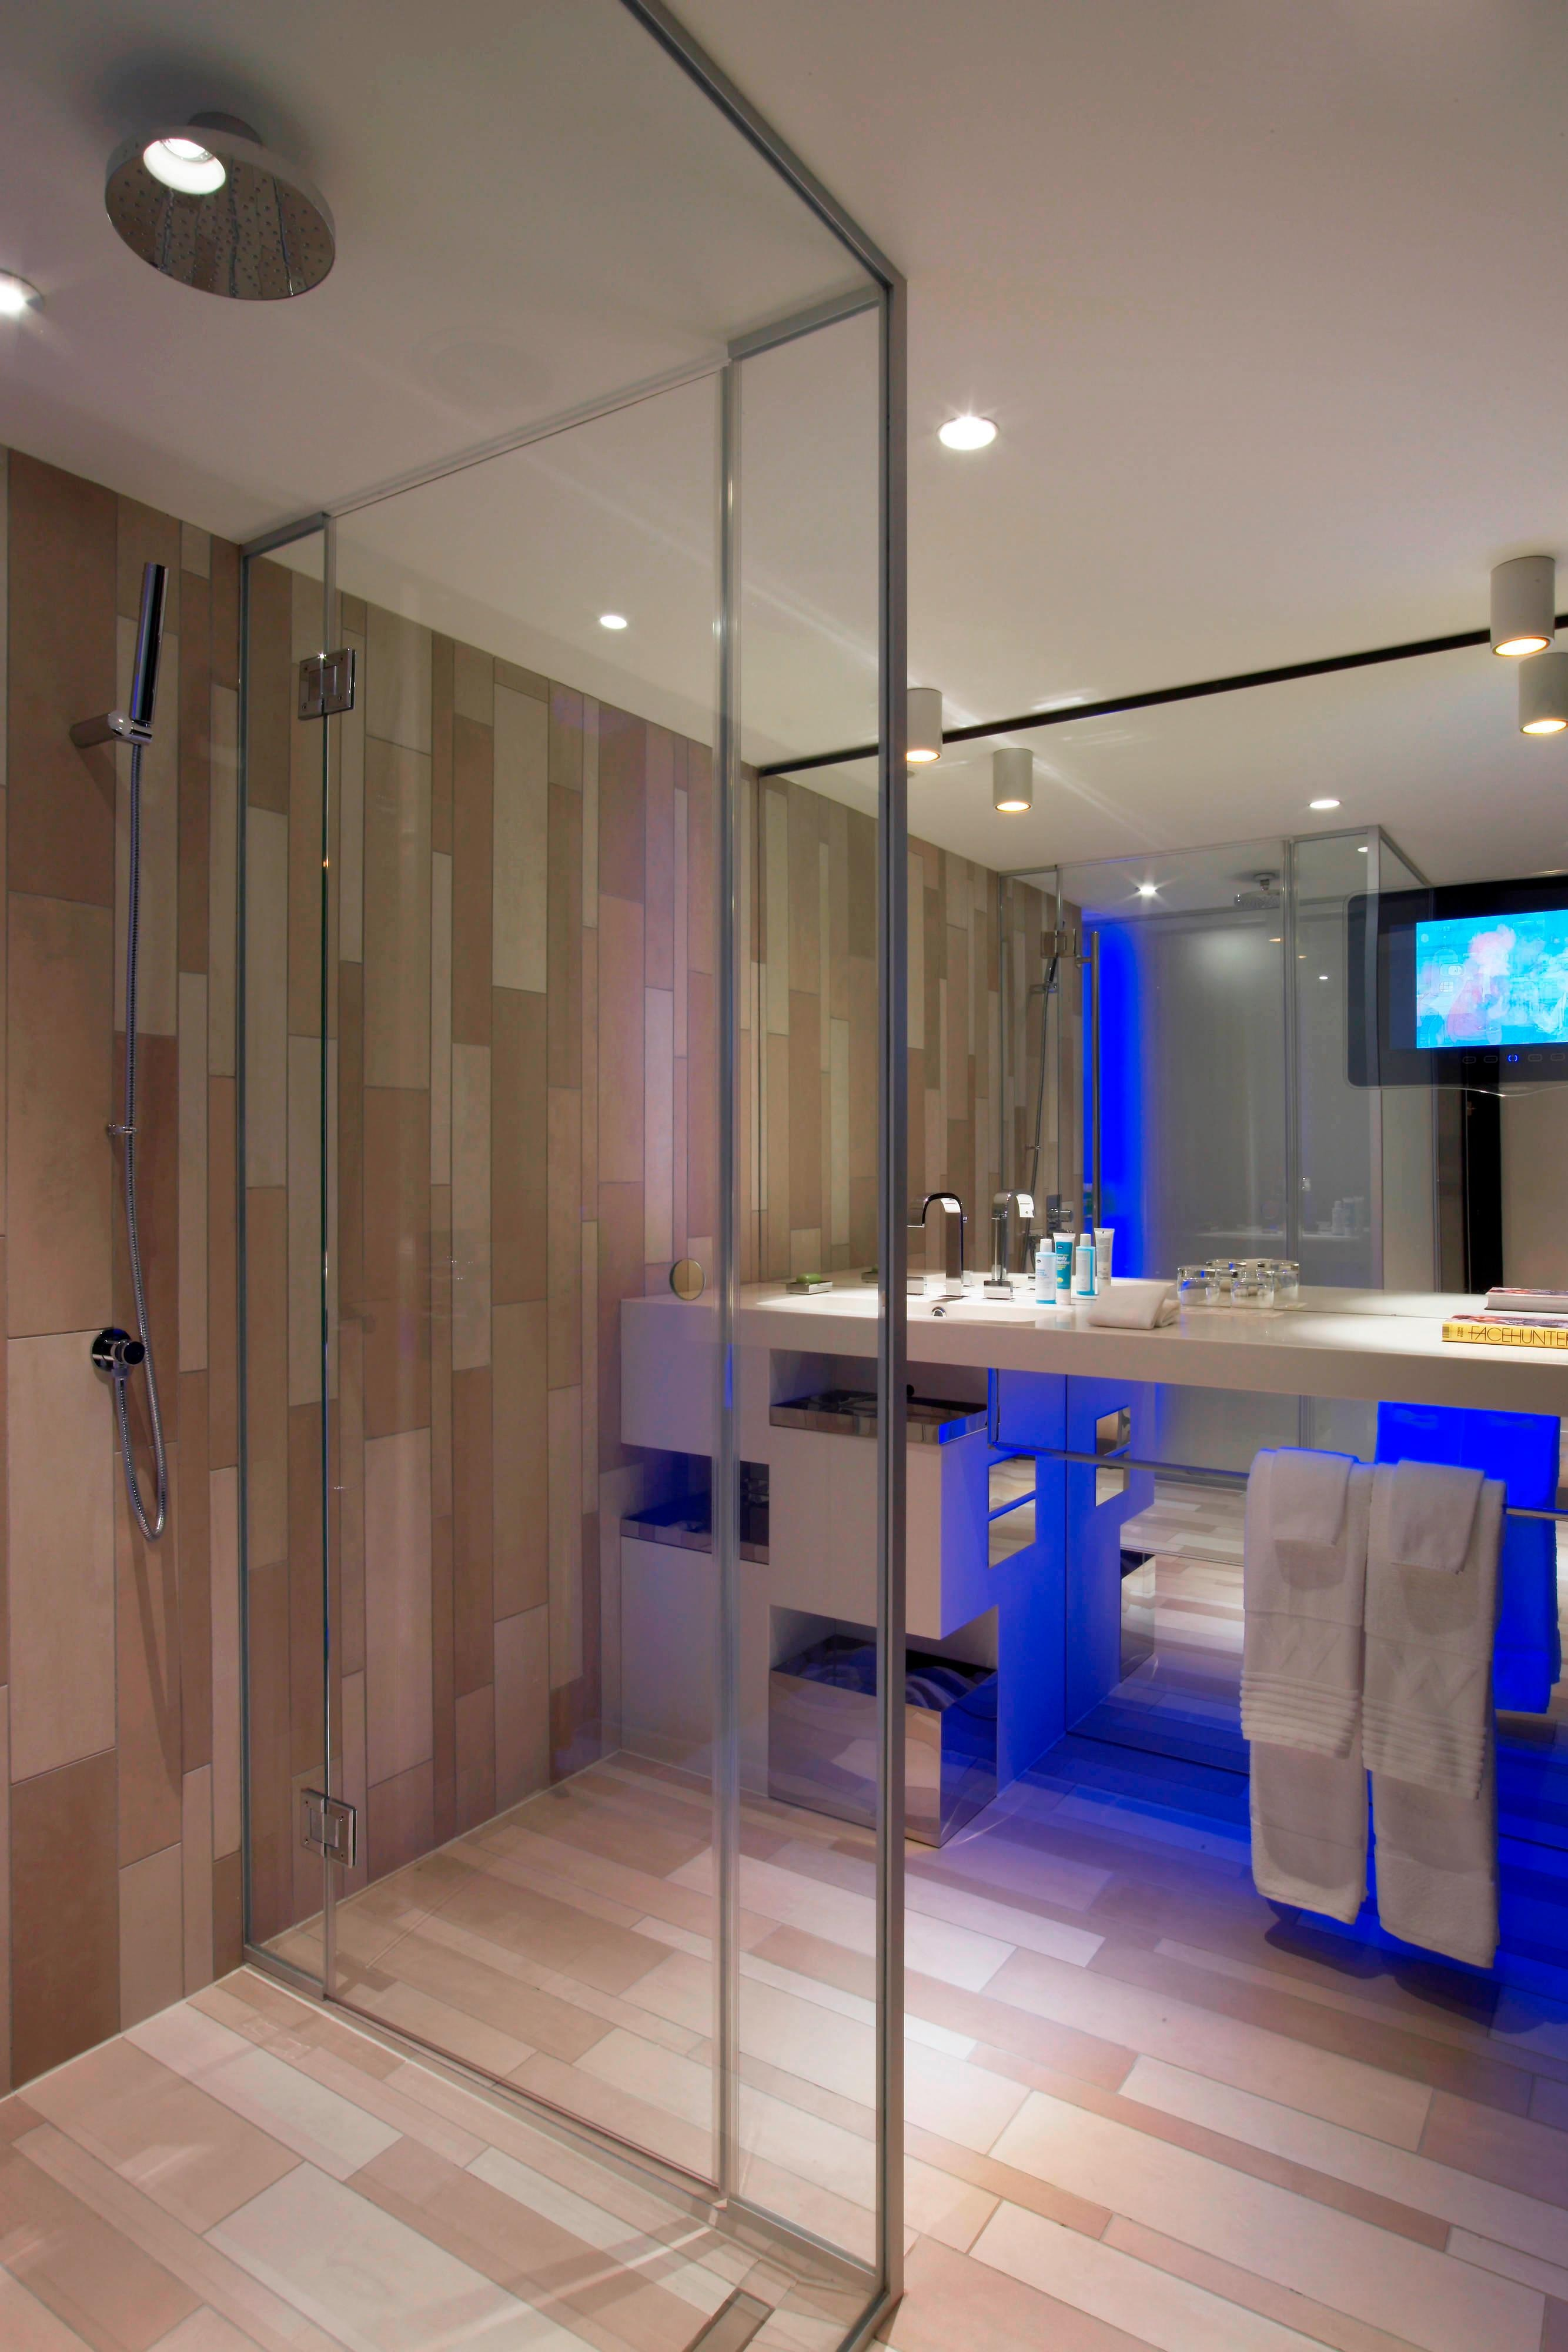 Cool Corner Room - Bathroom